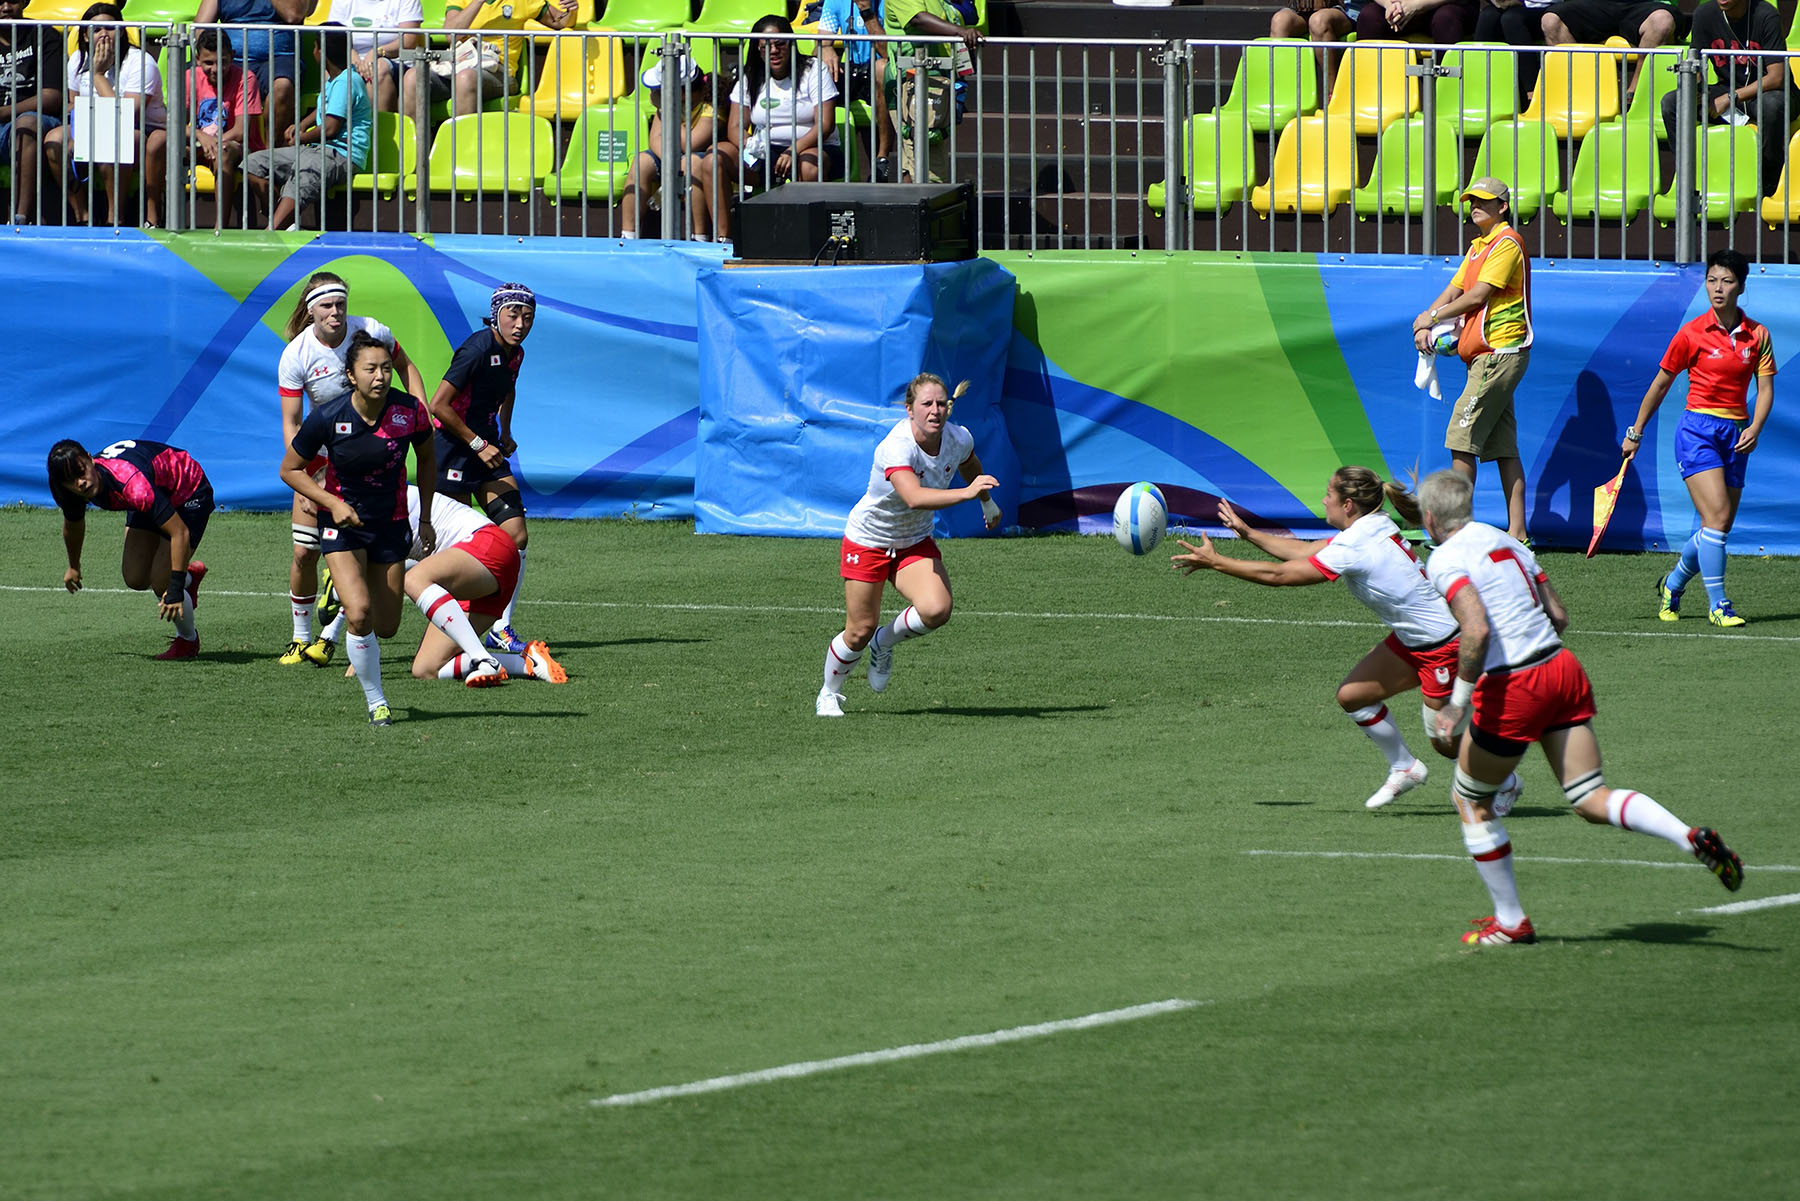 The Canadian women's Rugby Sevens team took on Japan in a first exciting game.